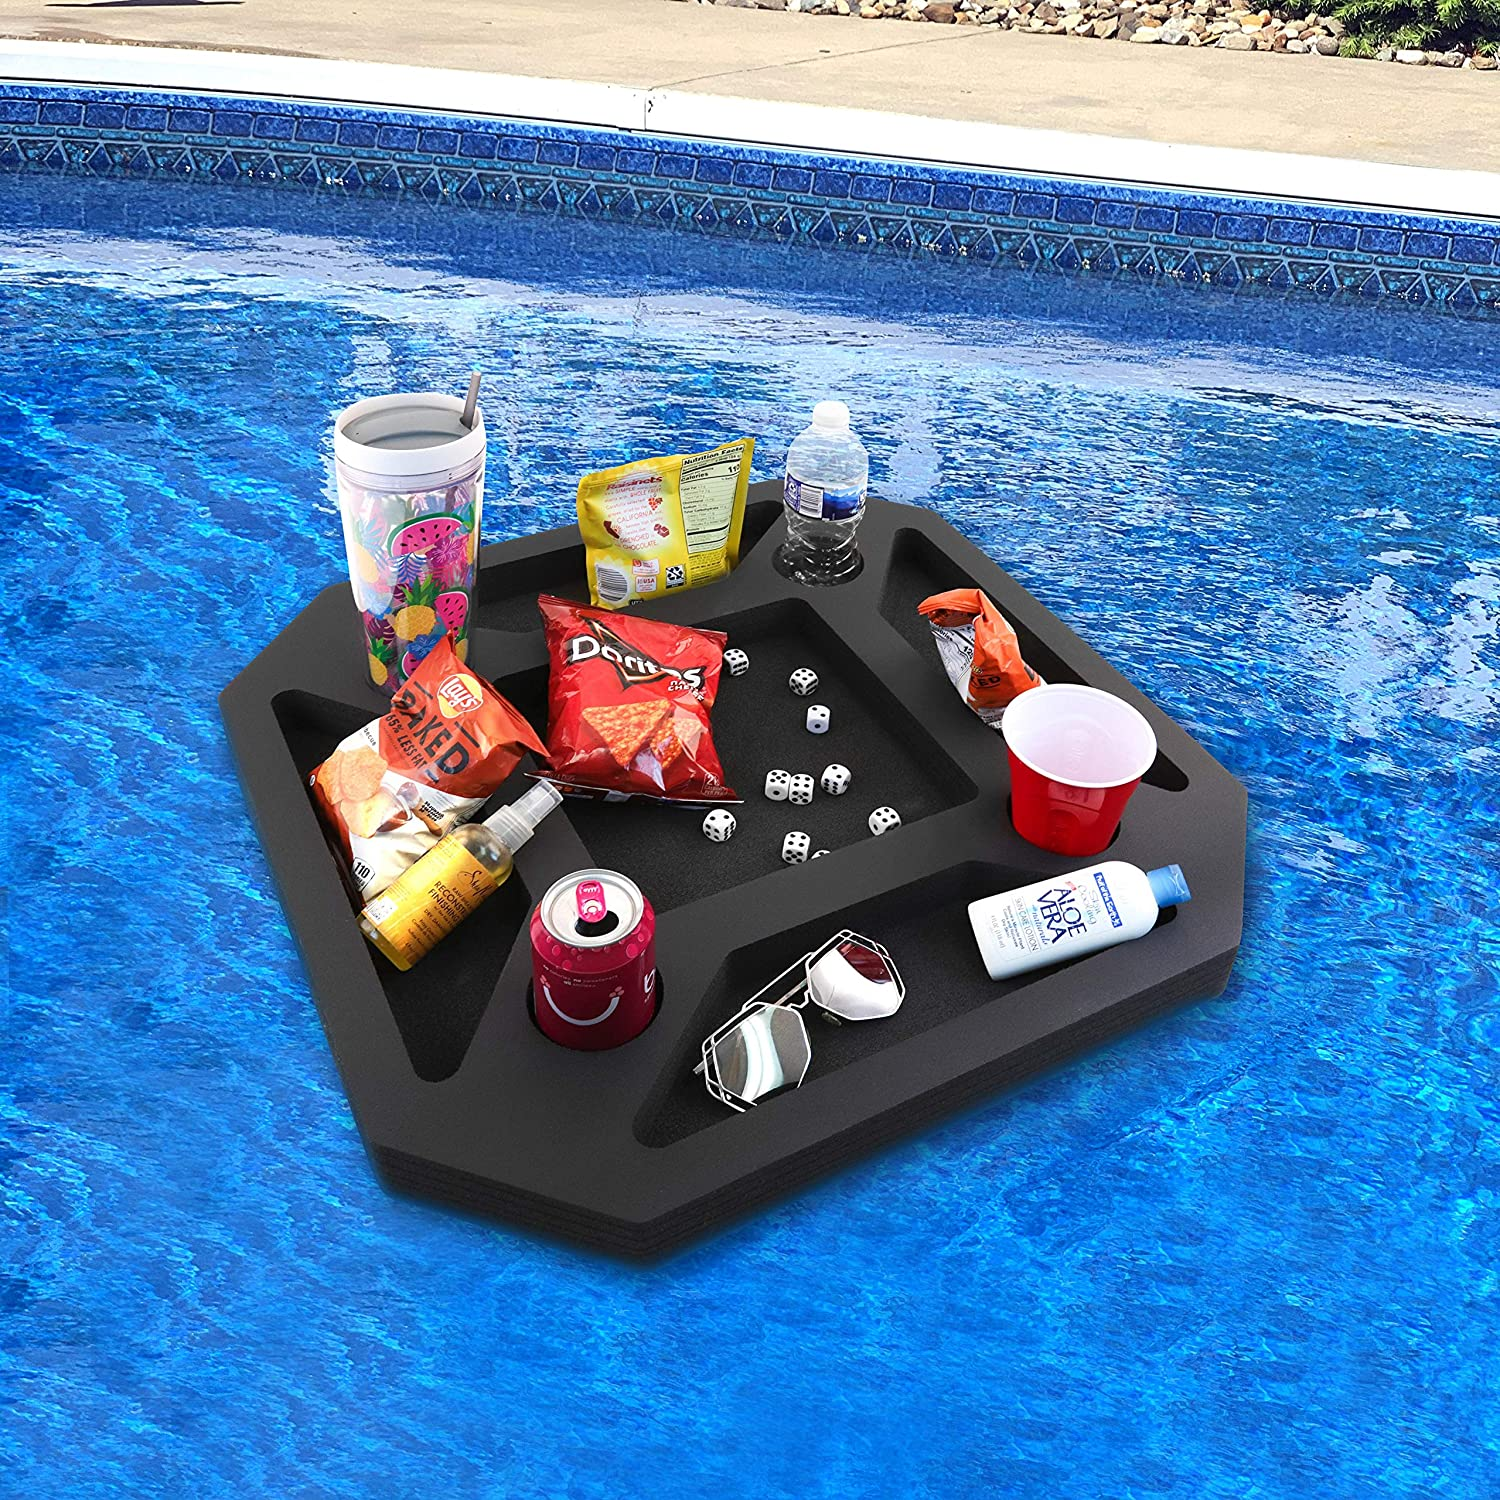 Polar Whale Floating Drink holder floats on water with snacks